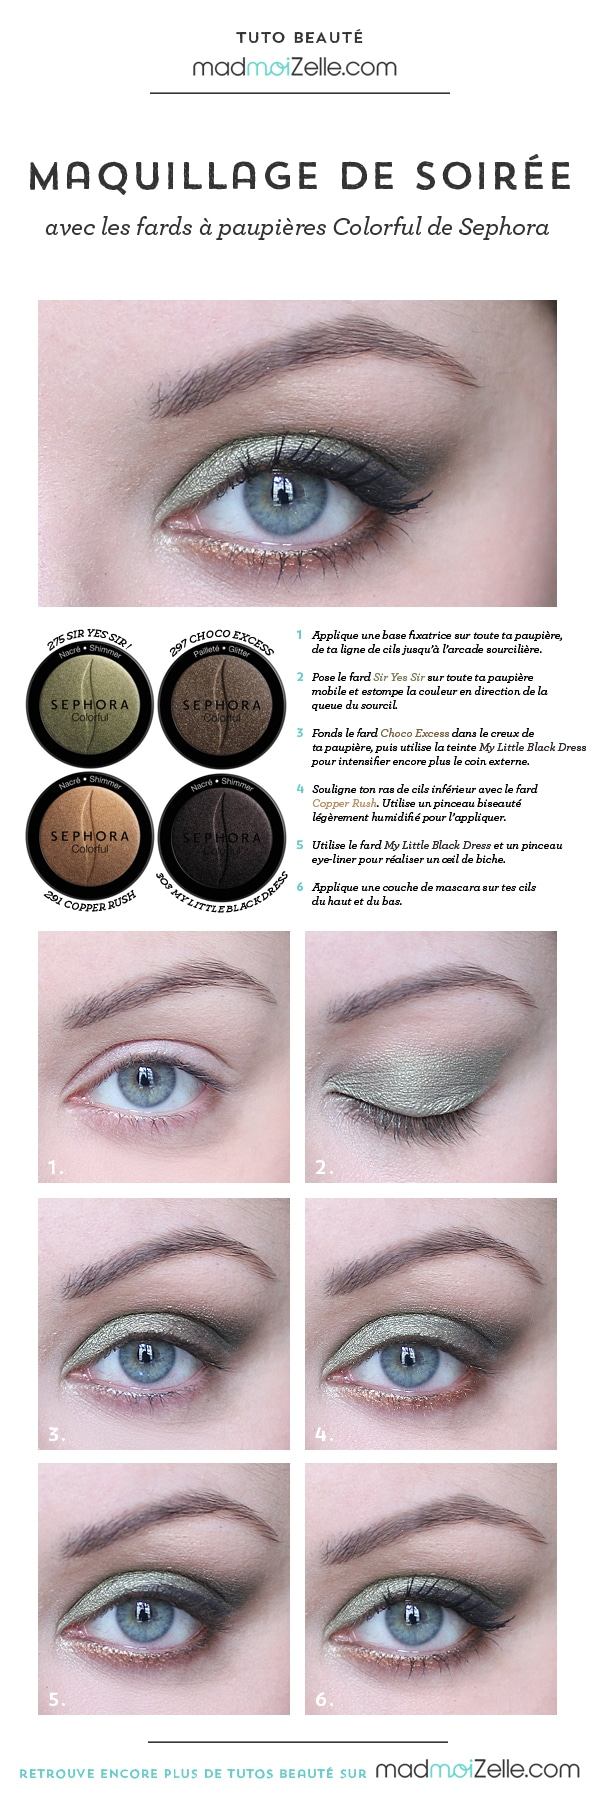 tuto-pinterest-sephora-maquillage-soiree